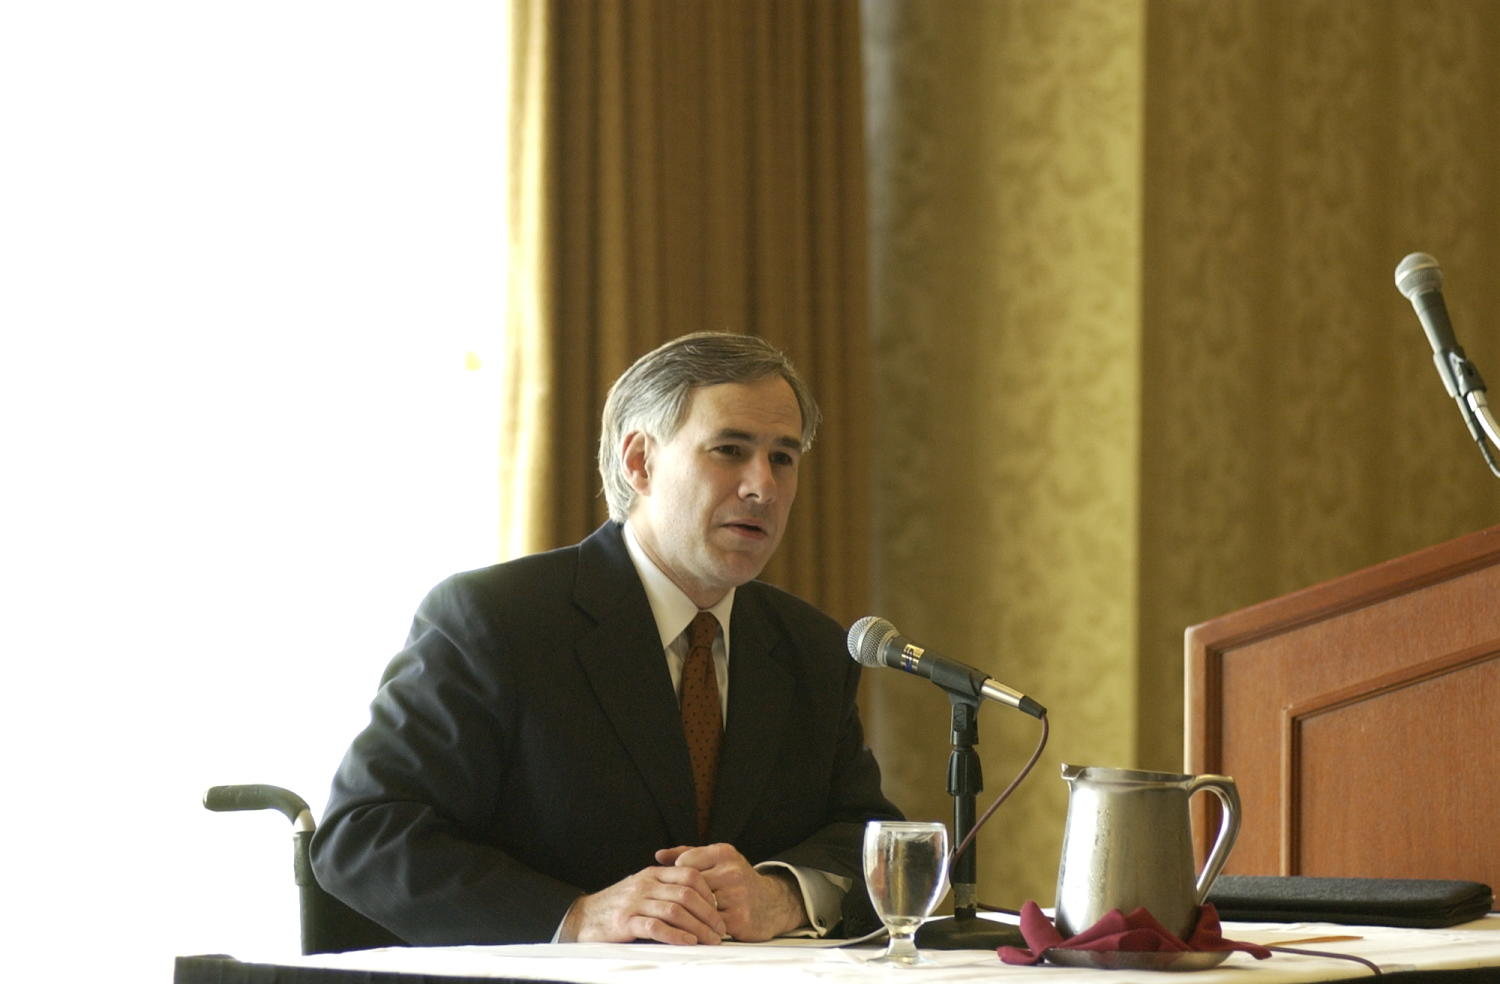 [Unidentified man attending the TDNA conference, 4], Photograph of an unidentified man seated in a chair and attending the 2004 Texas Daily News Association annual conference held in Corpus Christi. The man is seen speaking into the microphone placed in front of him and addressing the conference attendees.,